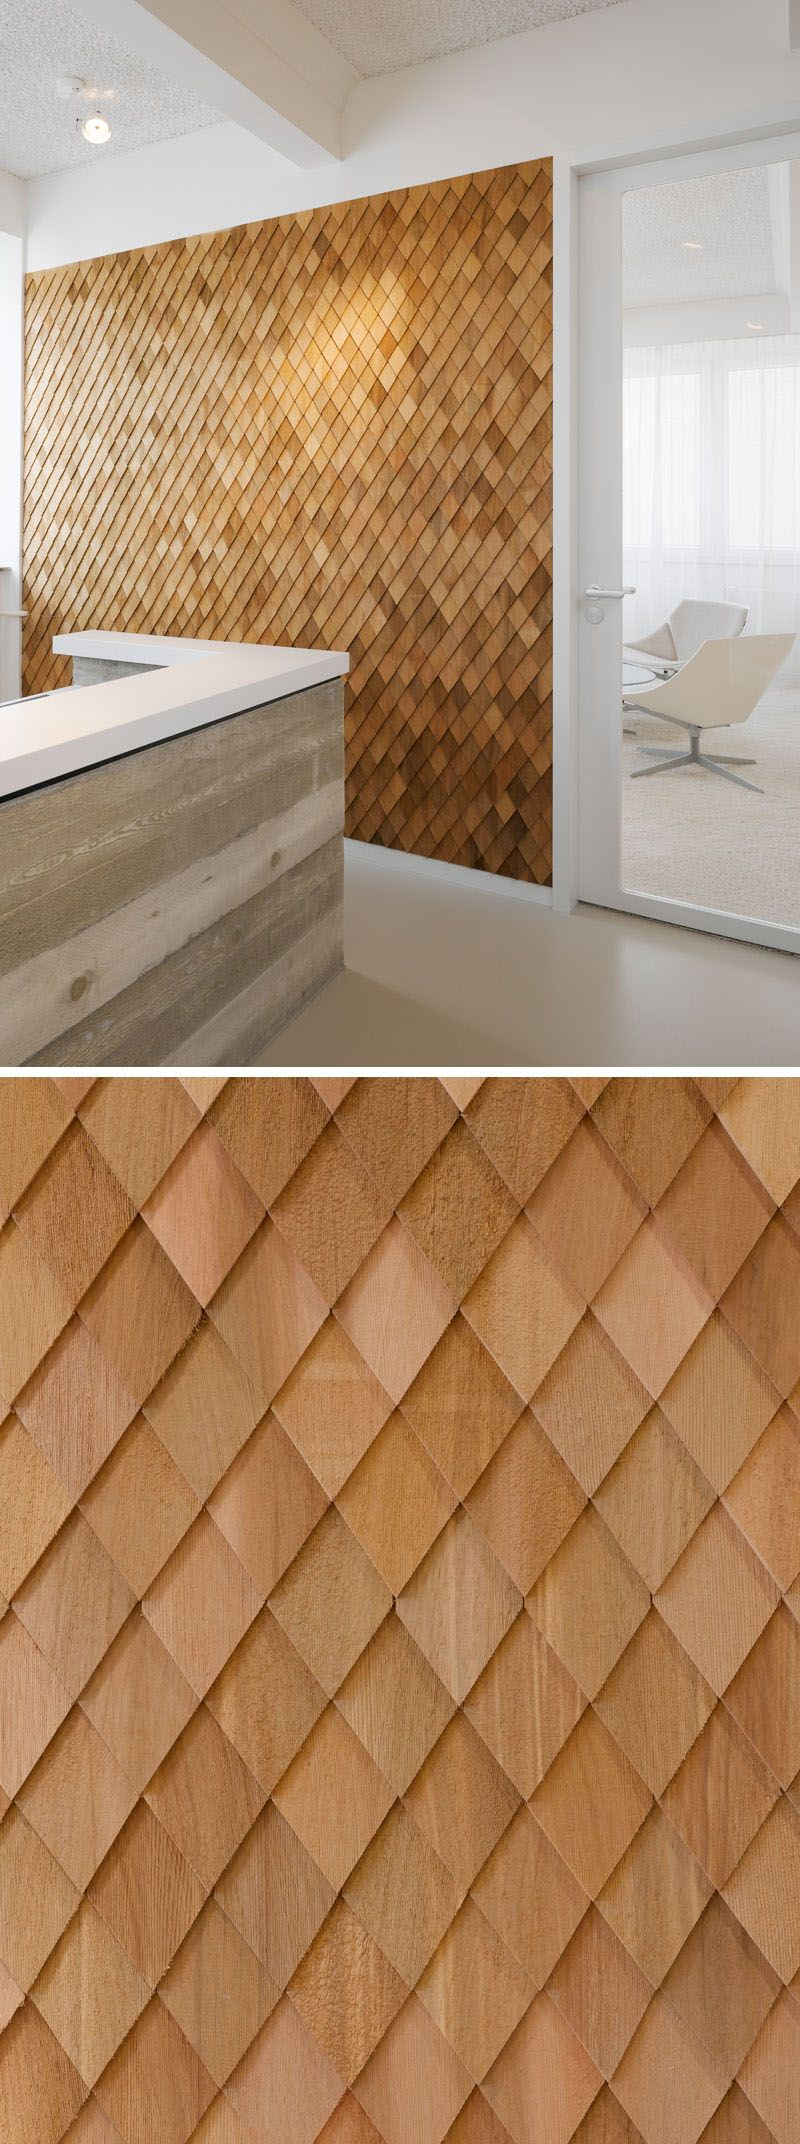 Using Wood Shingles To Create An Accent Wall Adds Warmth And